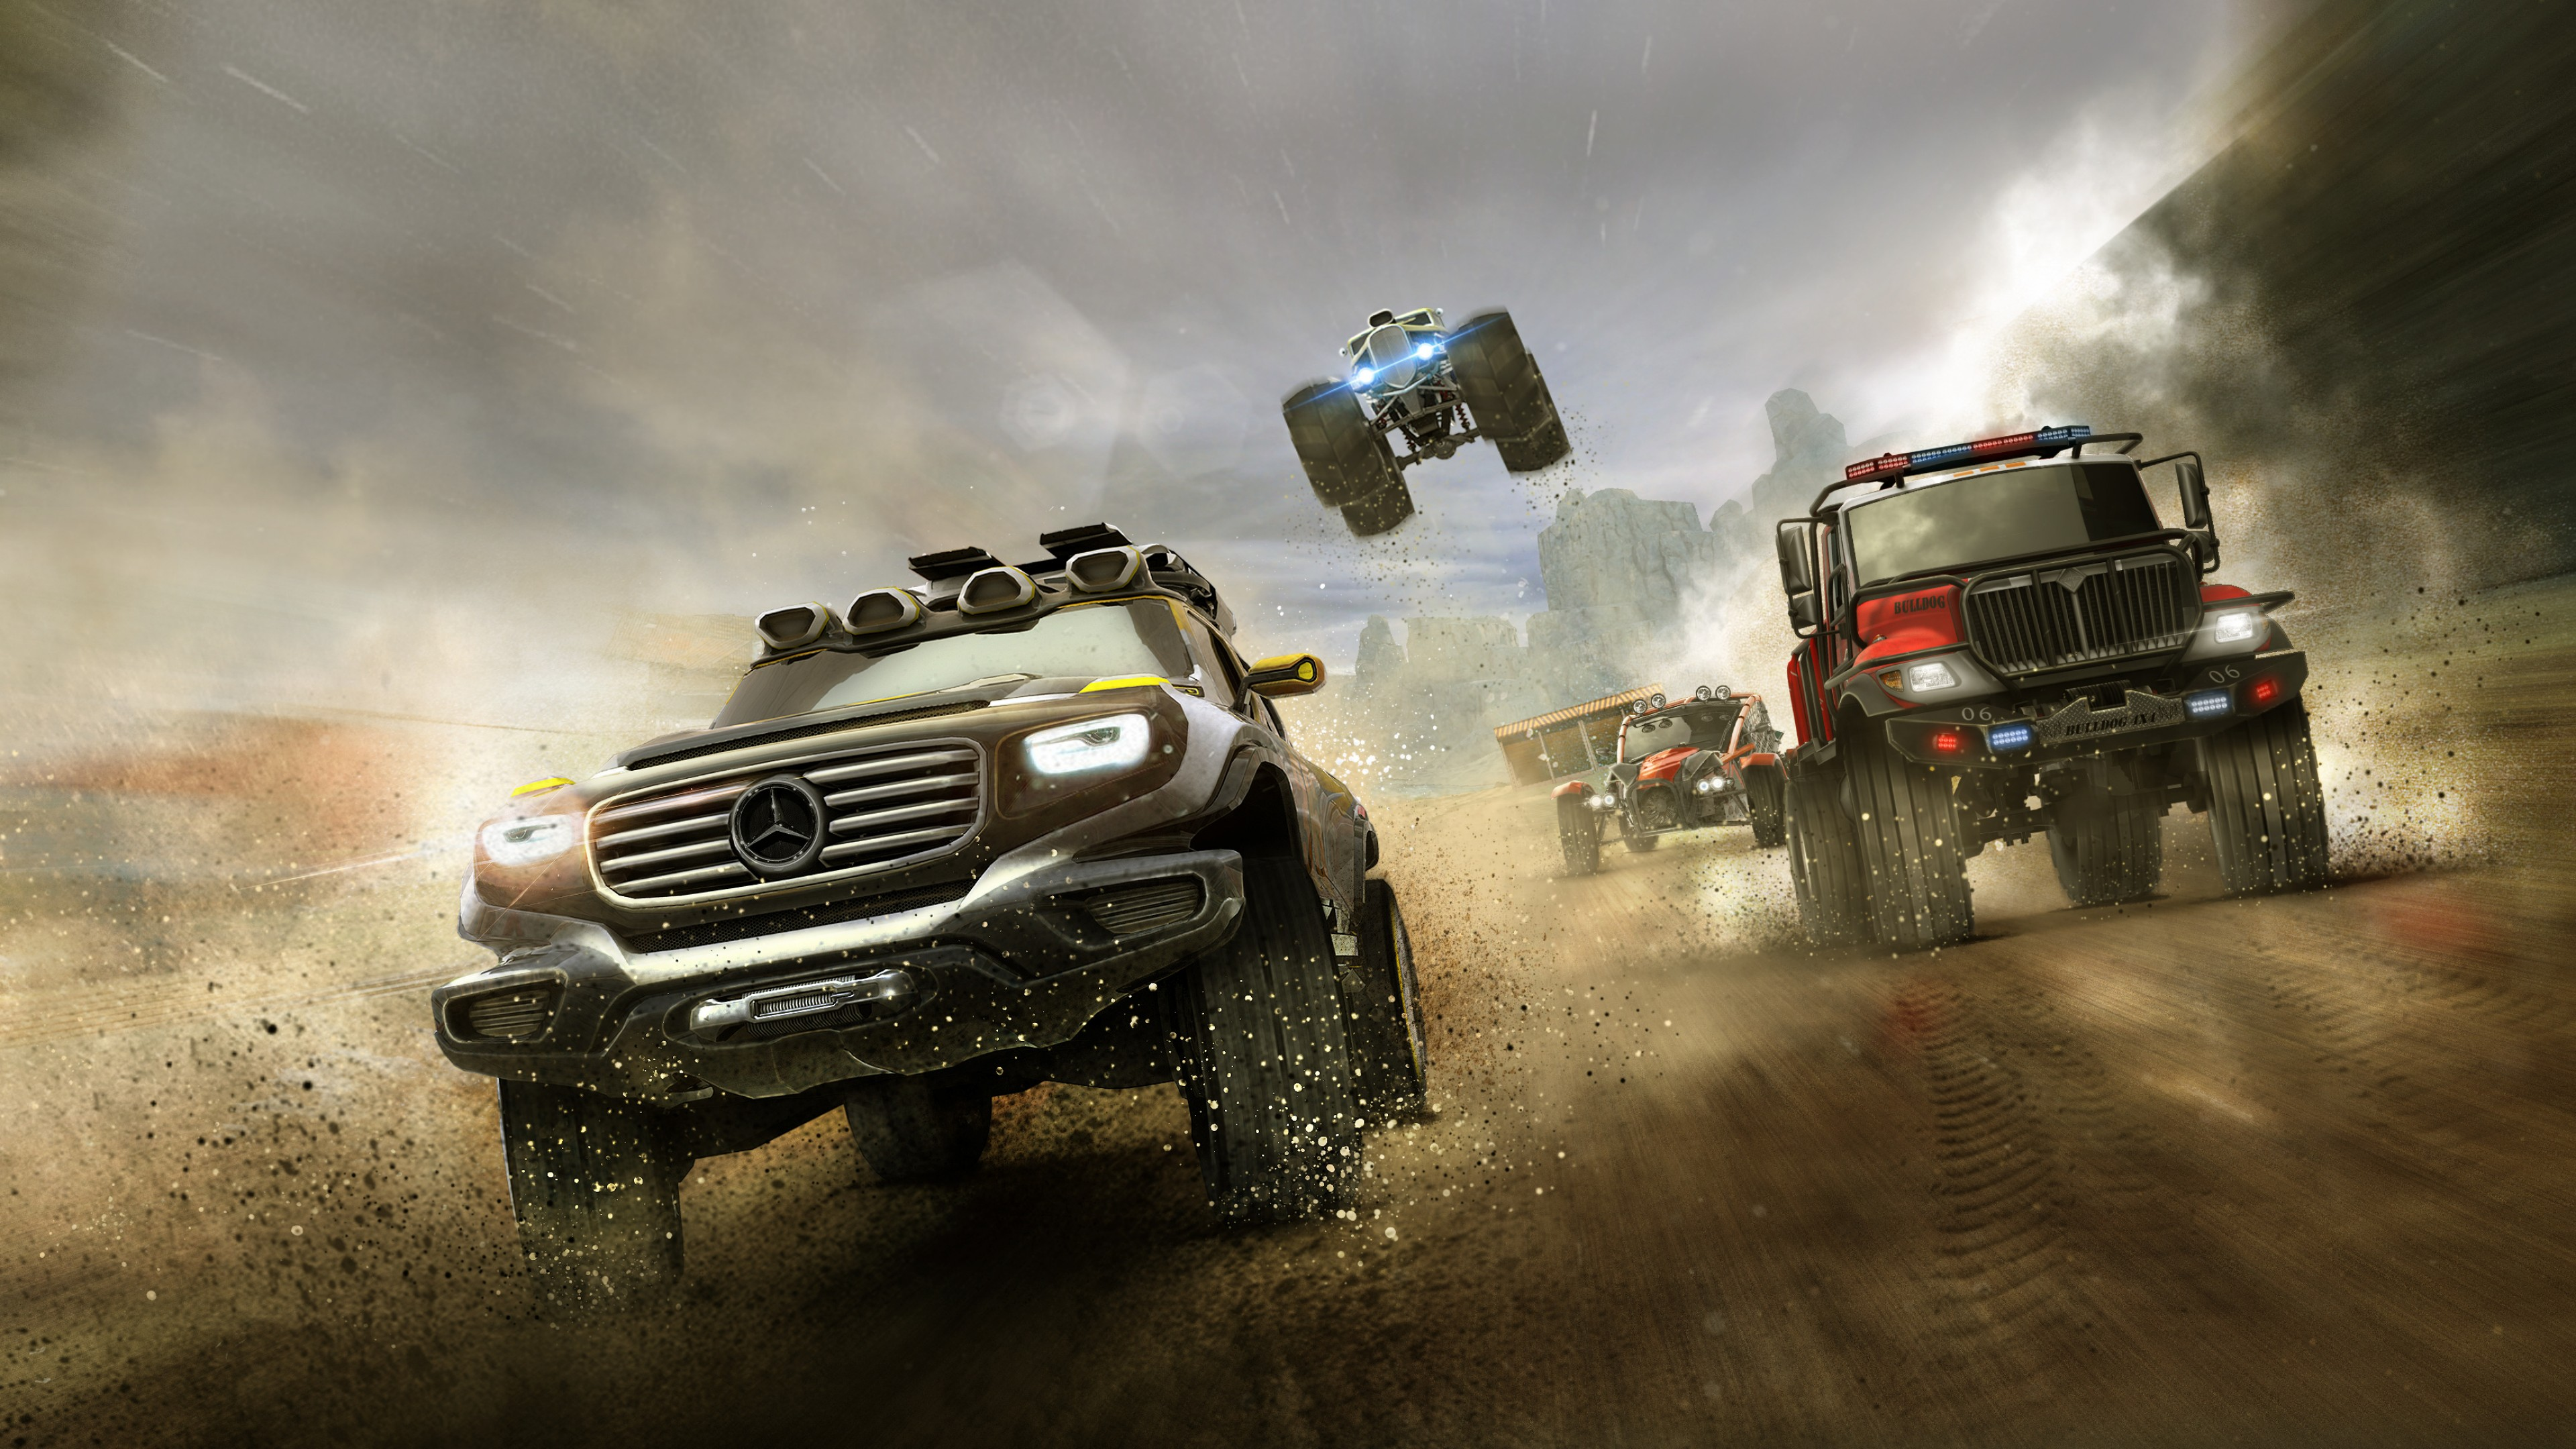 Cool Cars Games >> Wallpaper Asphalt Xtreme, racing, Android, iOS, PC, Games #12488